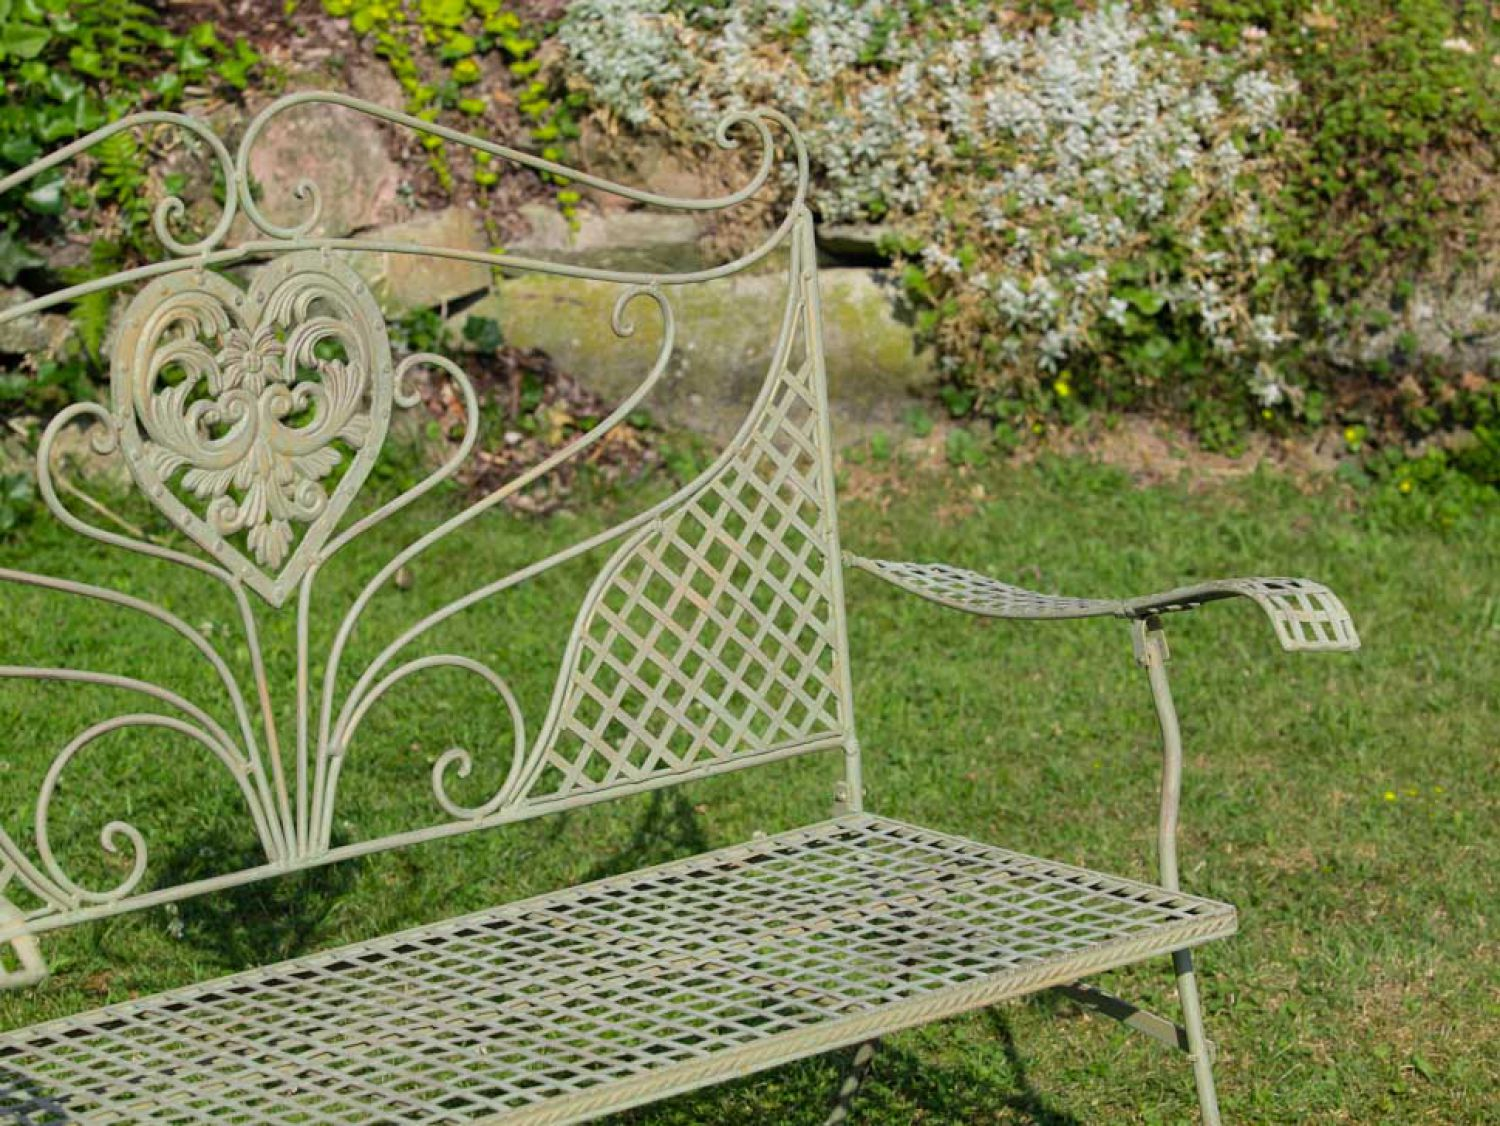 nostalgie gartenbank herz blumen metall antik stil gr n gartenm bel bank garden ebay. Black Bedroom Furniture Sets. Home Design Ideas